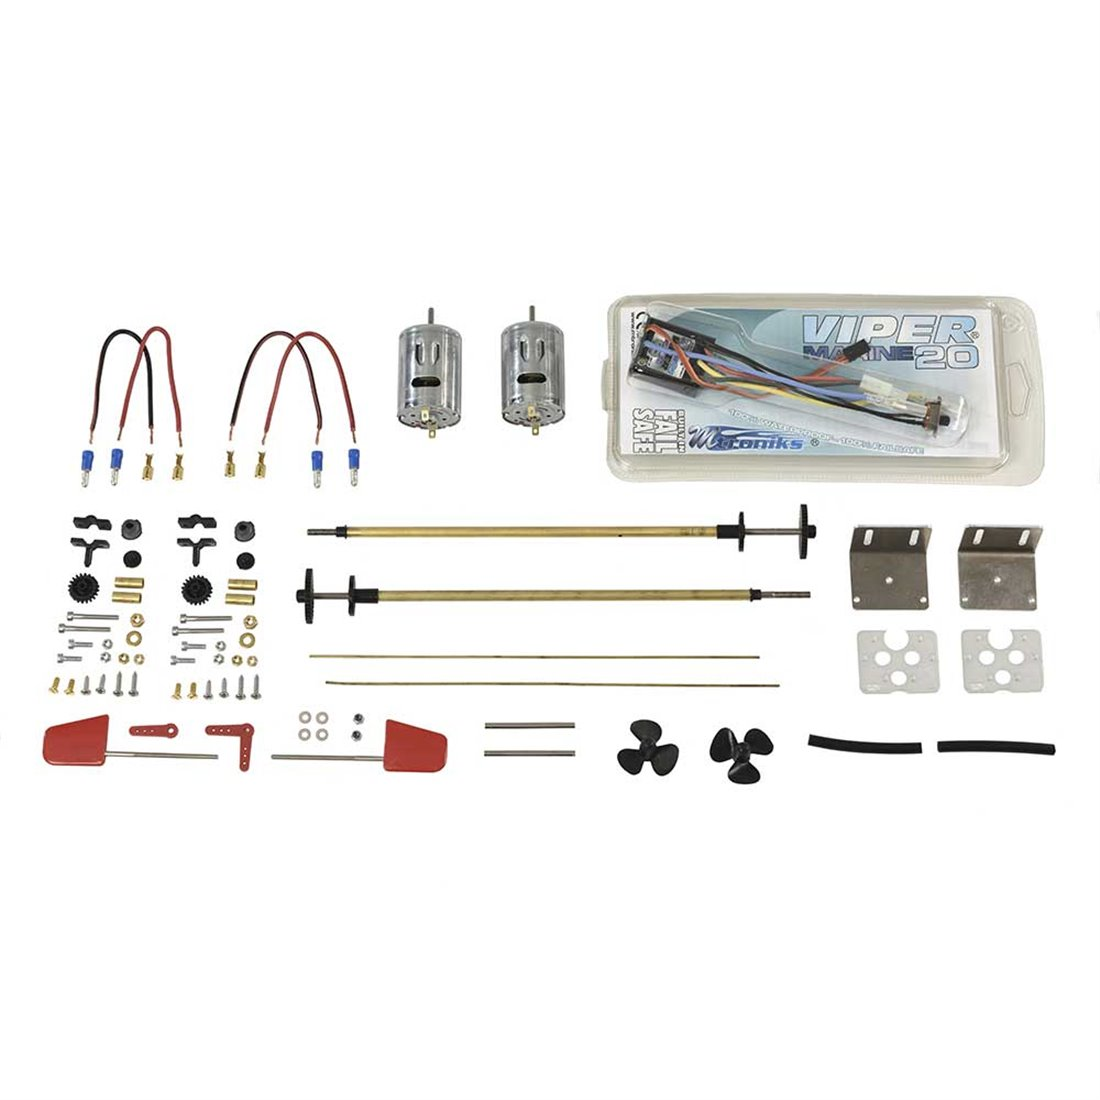 Italian Runabout Transmission Kit